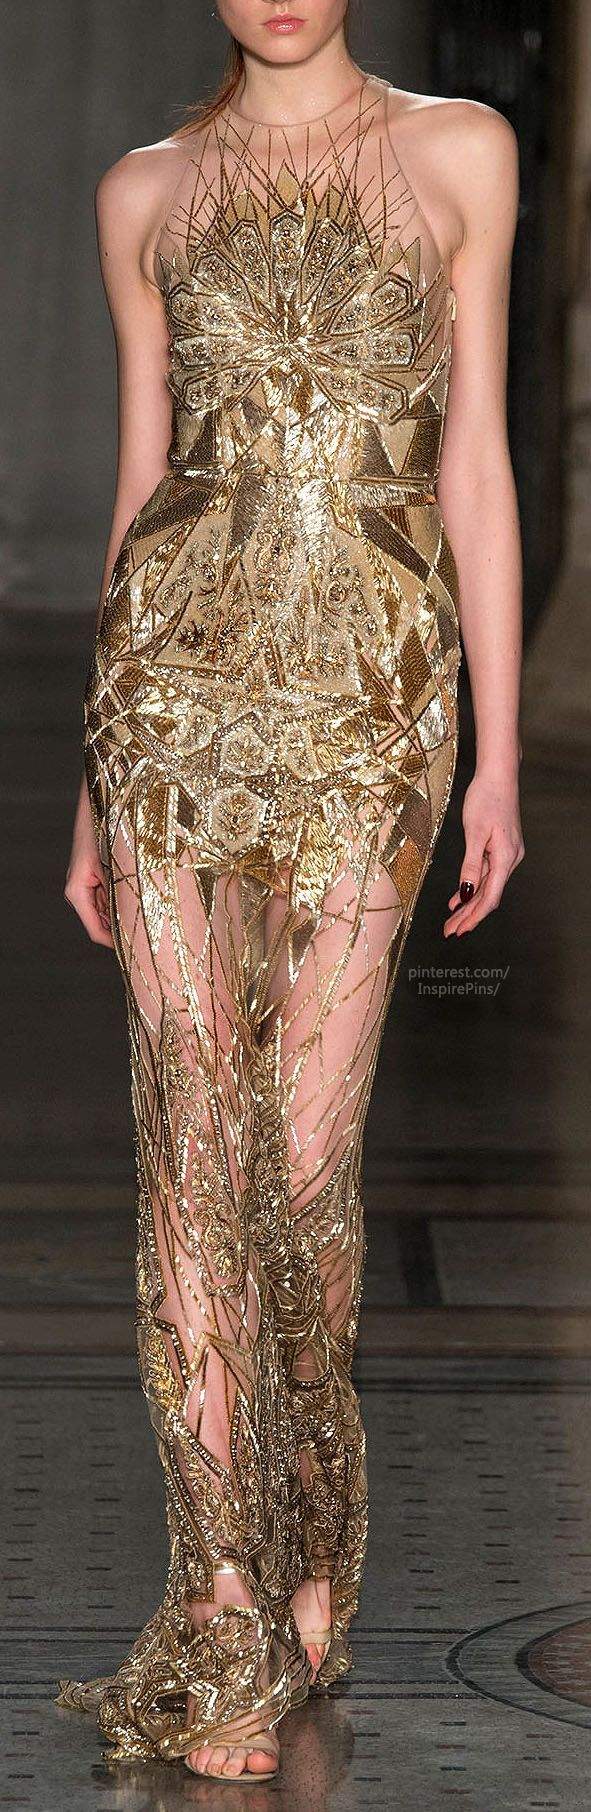 fall 2014 julien mcdonald gown dress is too short (where it becomes transparent)